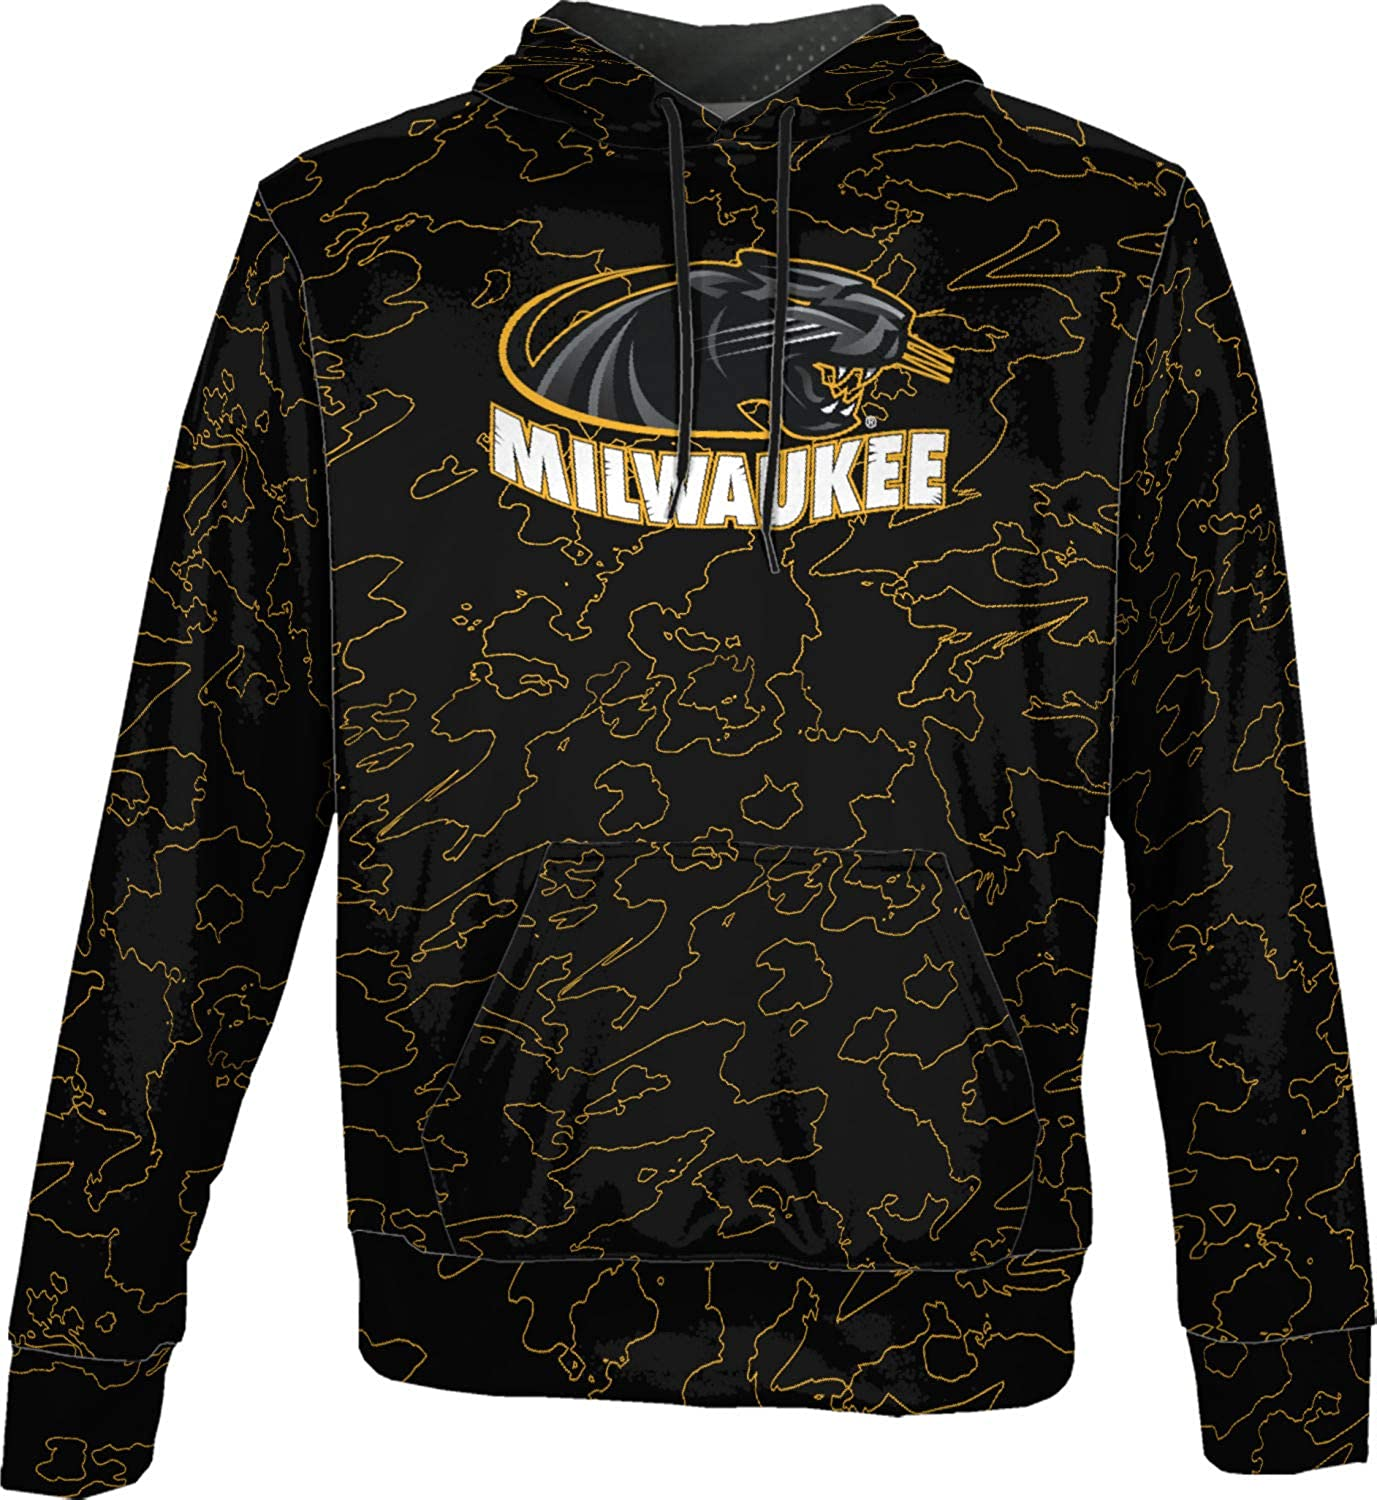 All items in the store University of Wisconsin-Milwaukee Boys' Pullover Hoodie School Mail order